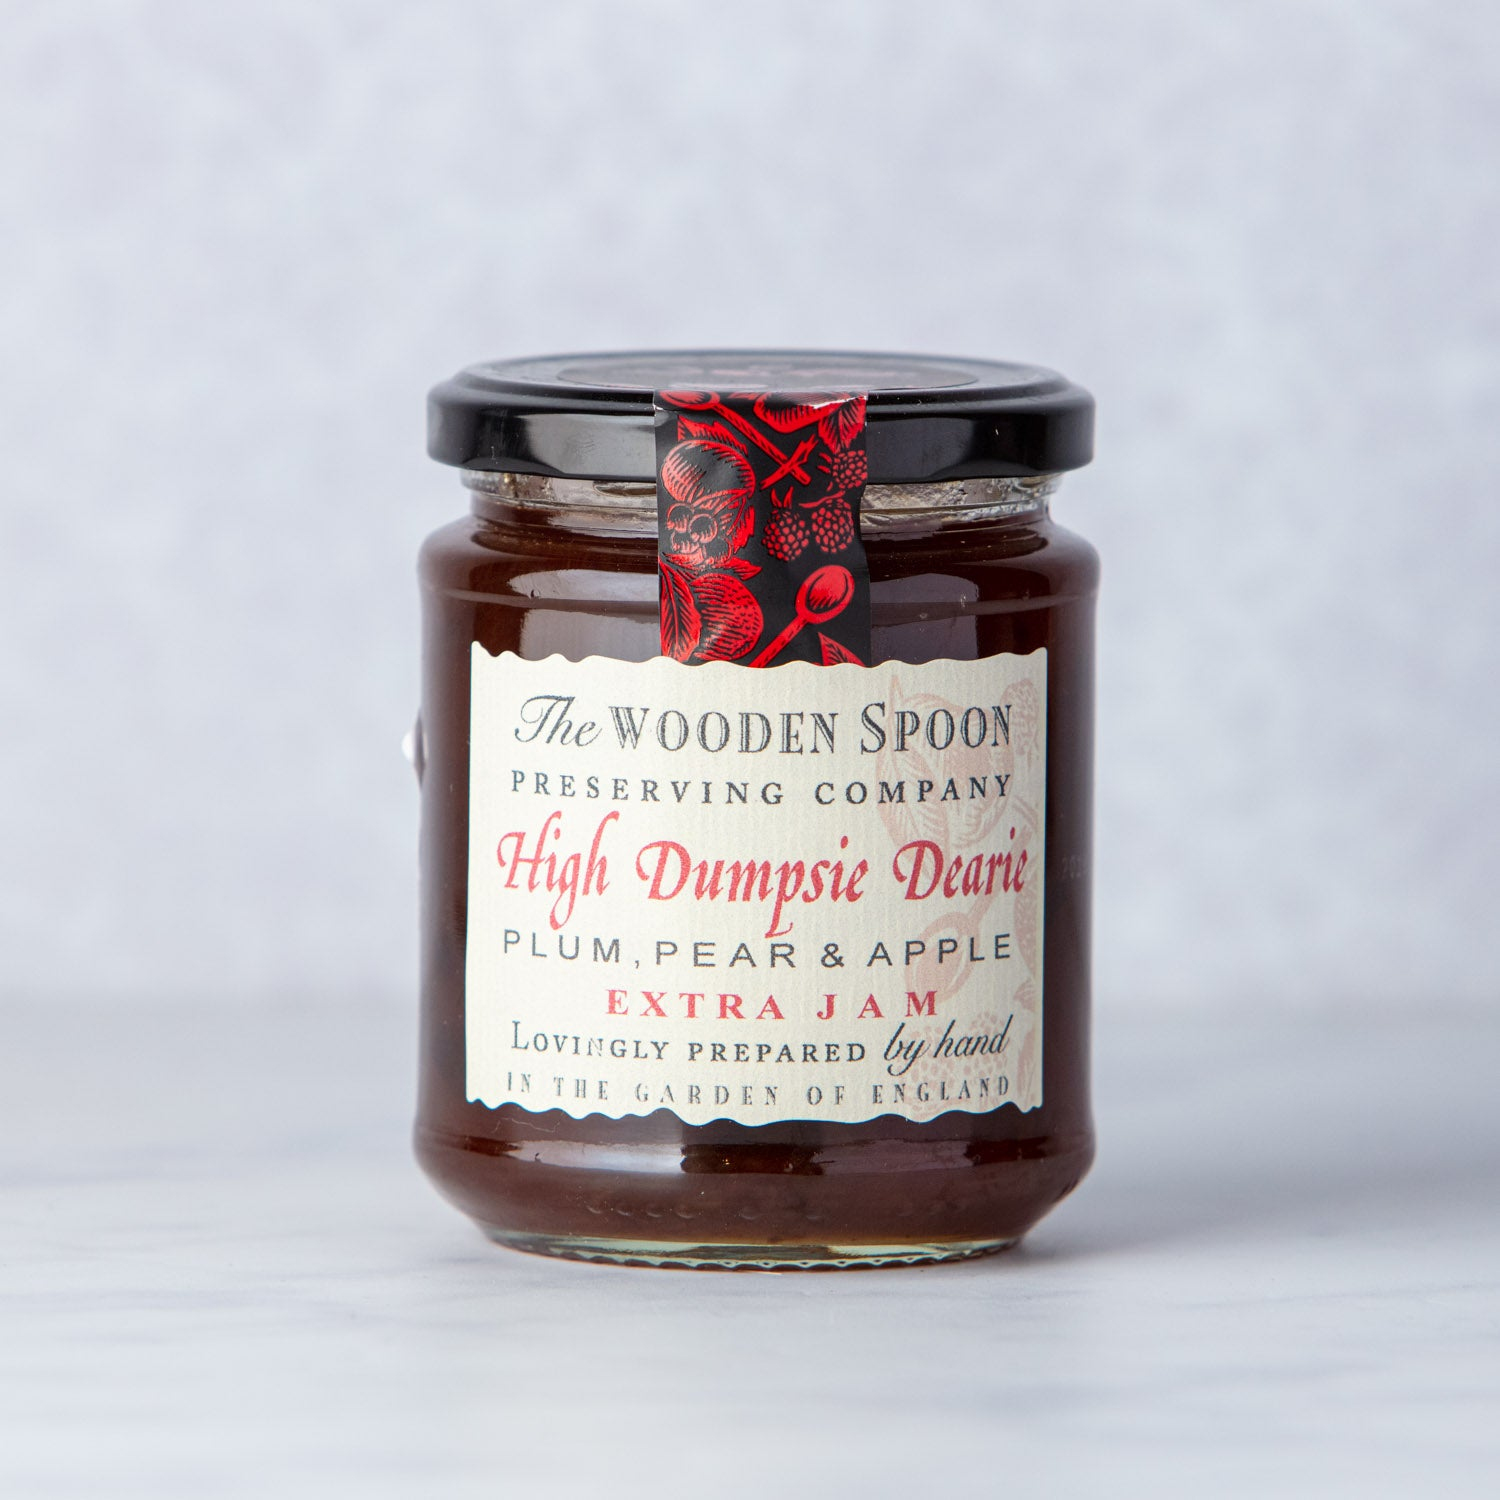 HIGH DUMPSIE DEARIE PLUM, PEAR & APPLE JAM